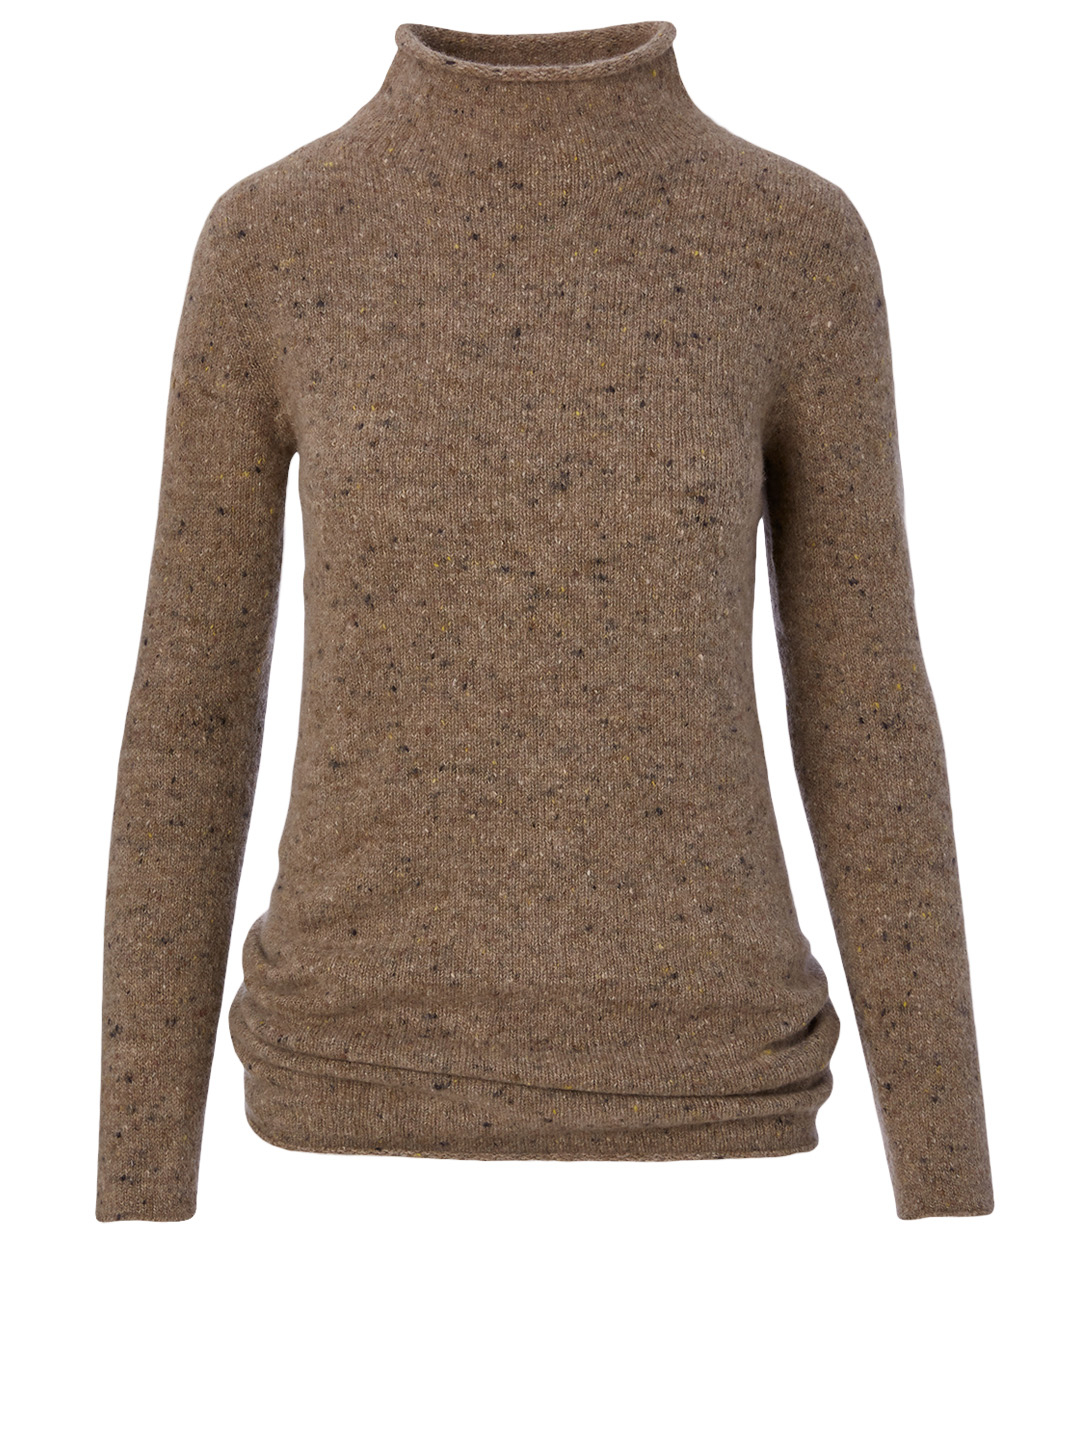 AGNONA Wool And Cashmere Sweater Women's Neutral